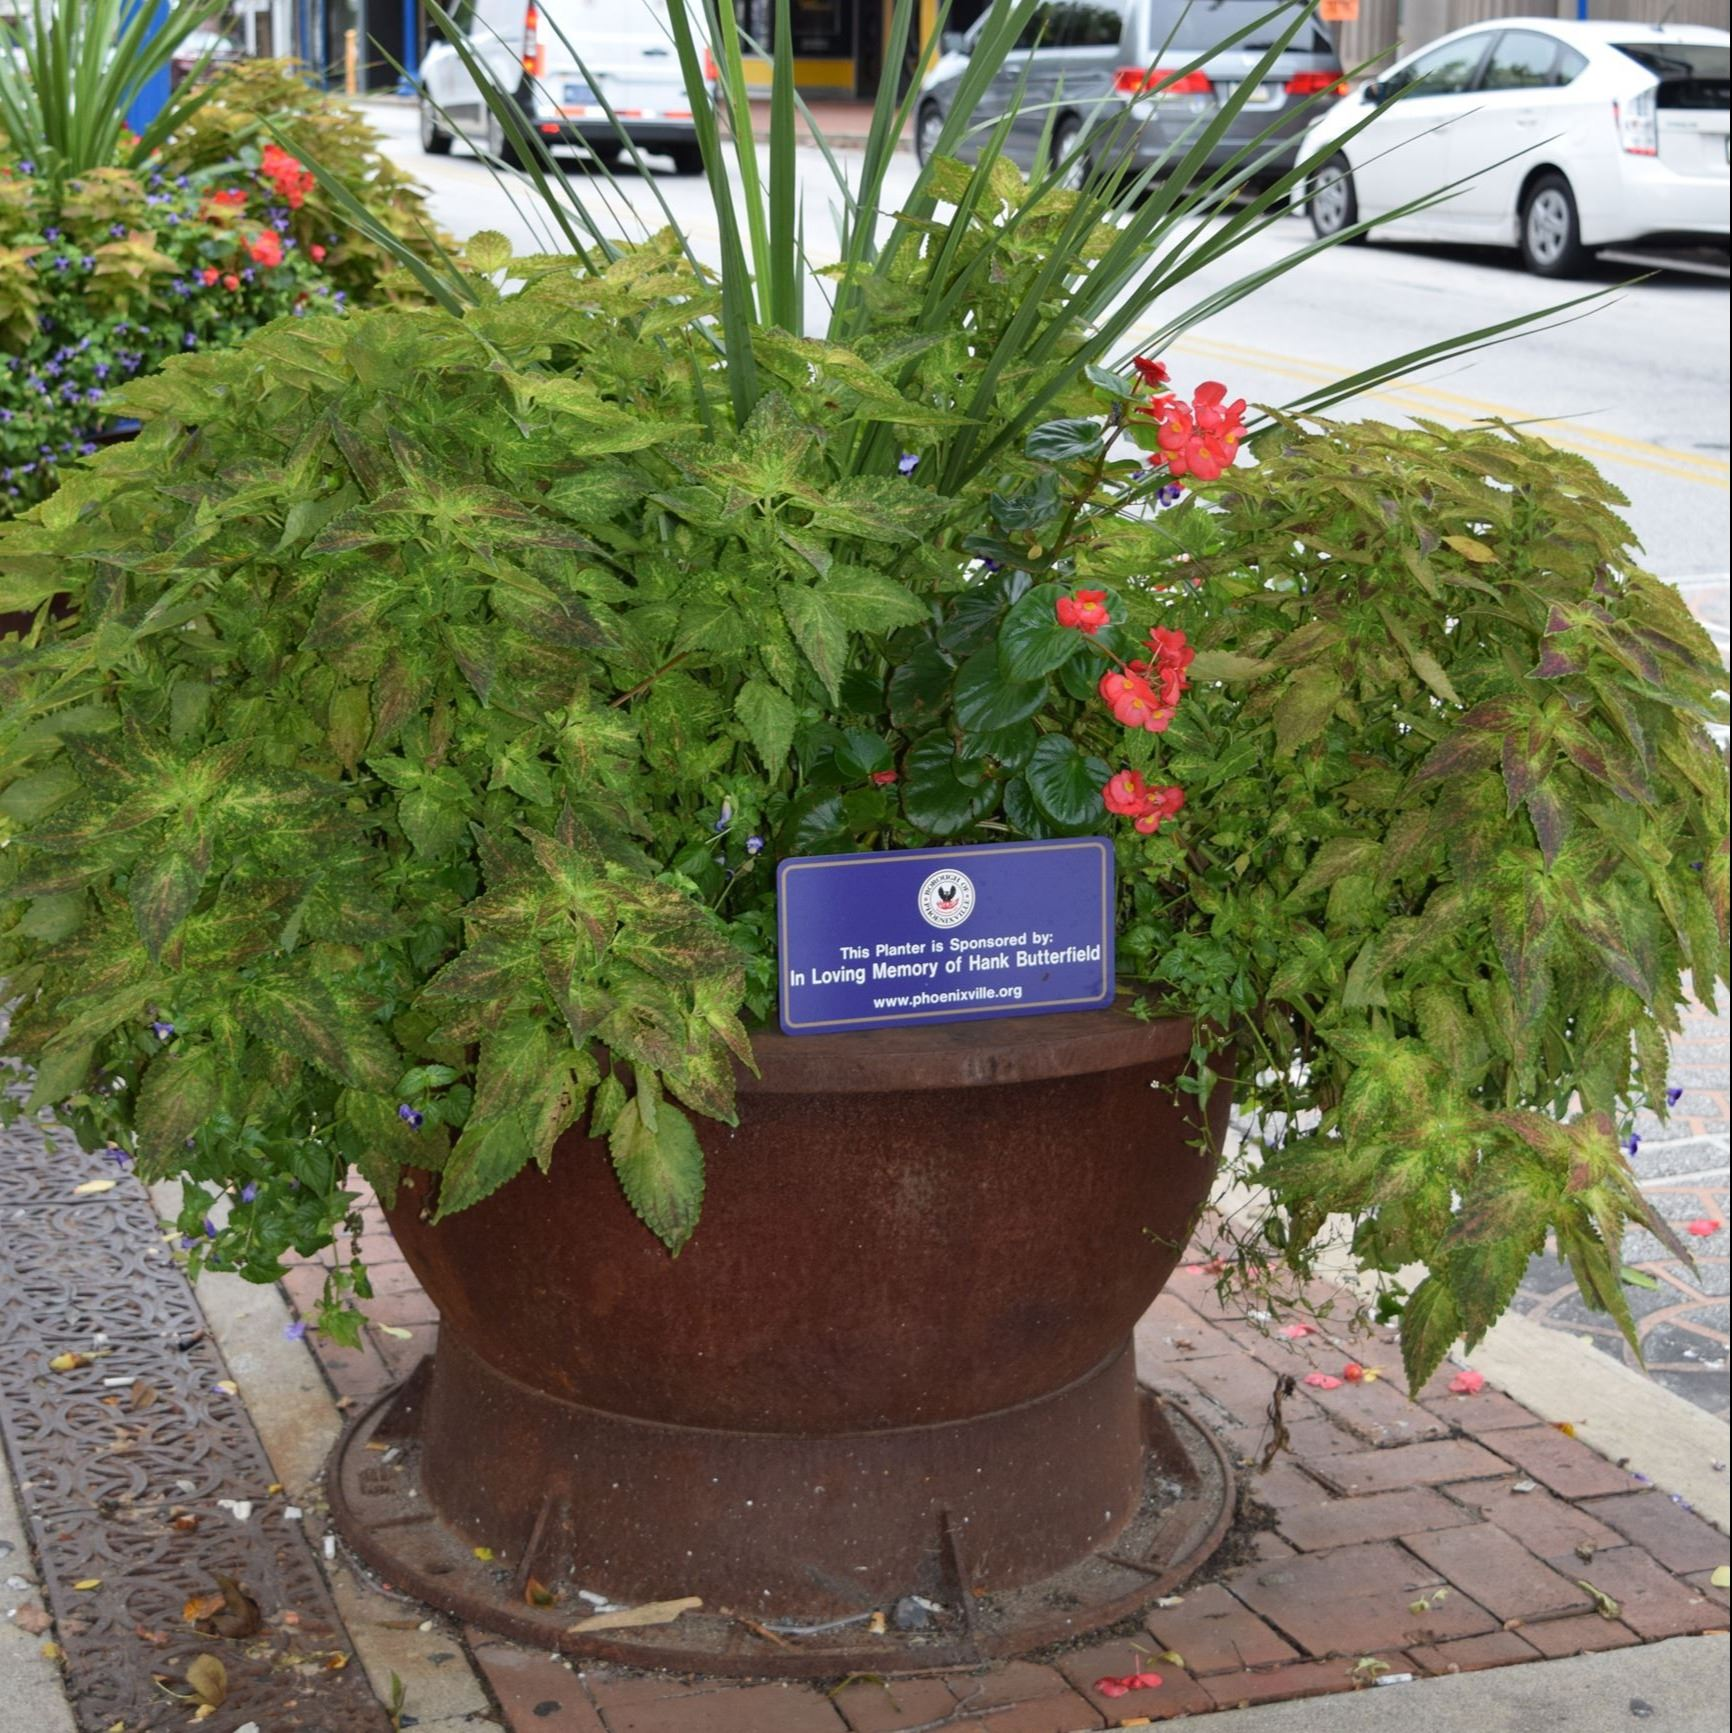 In Loving Memory of Hank Butterfield Planter